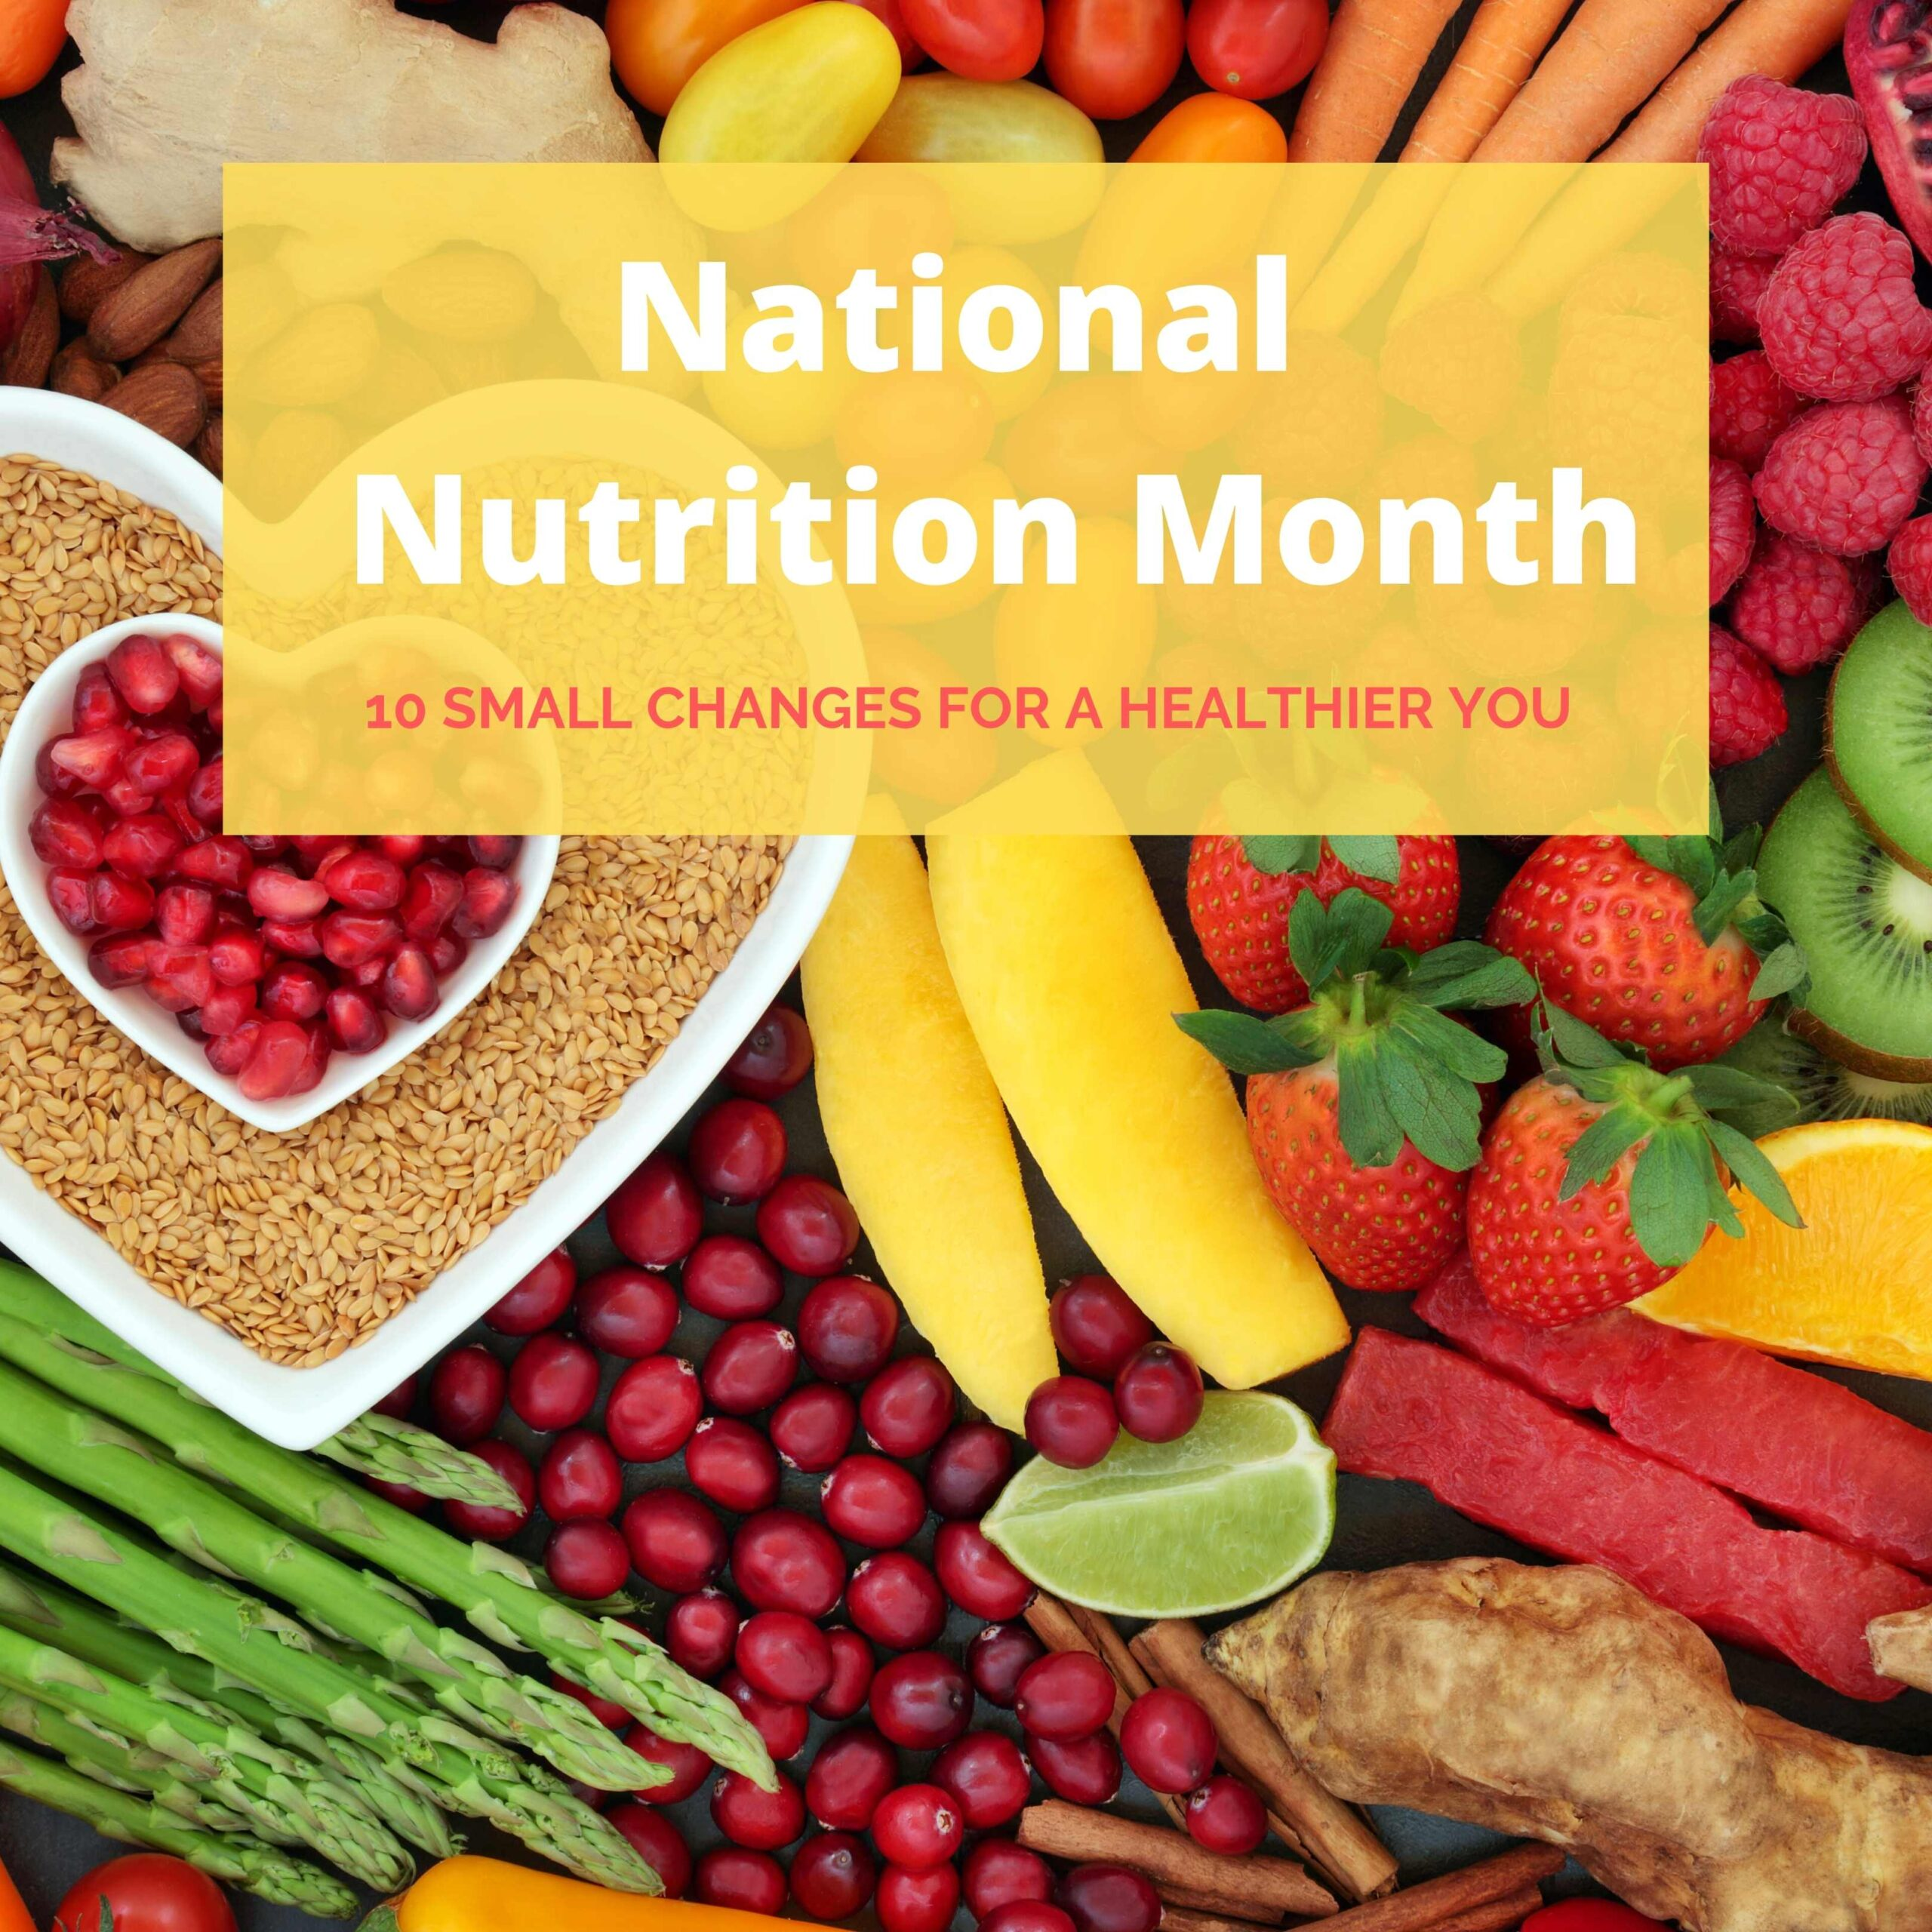 National Nutrition Month, The healthy life foundation, health tips, healthy lifestyle